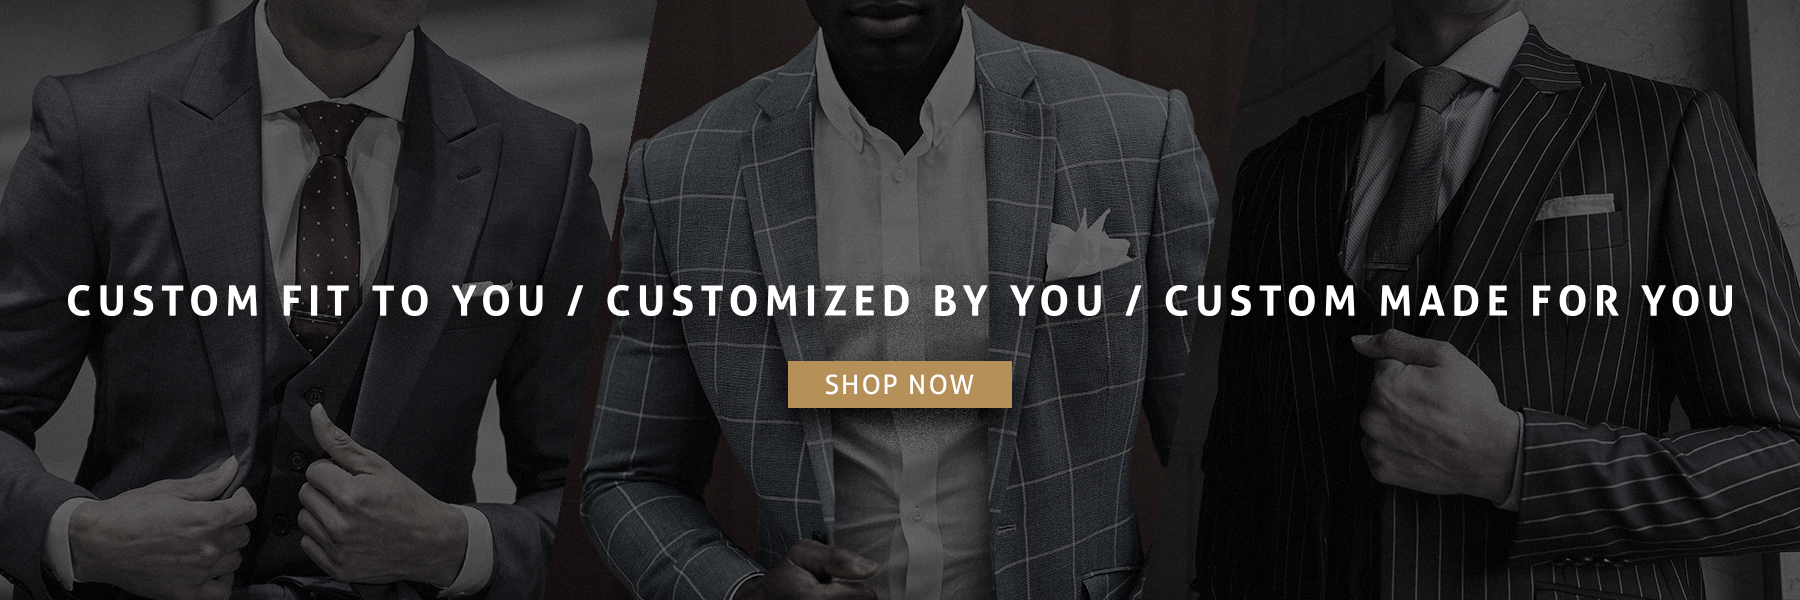 Custom Men's Suits, Jackets and More | Eph Apparel